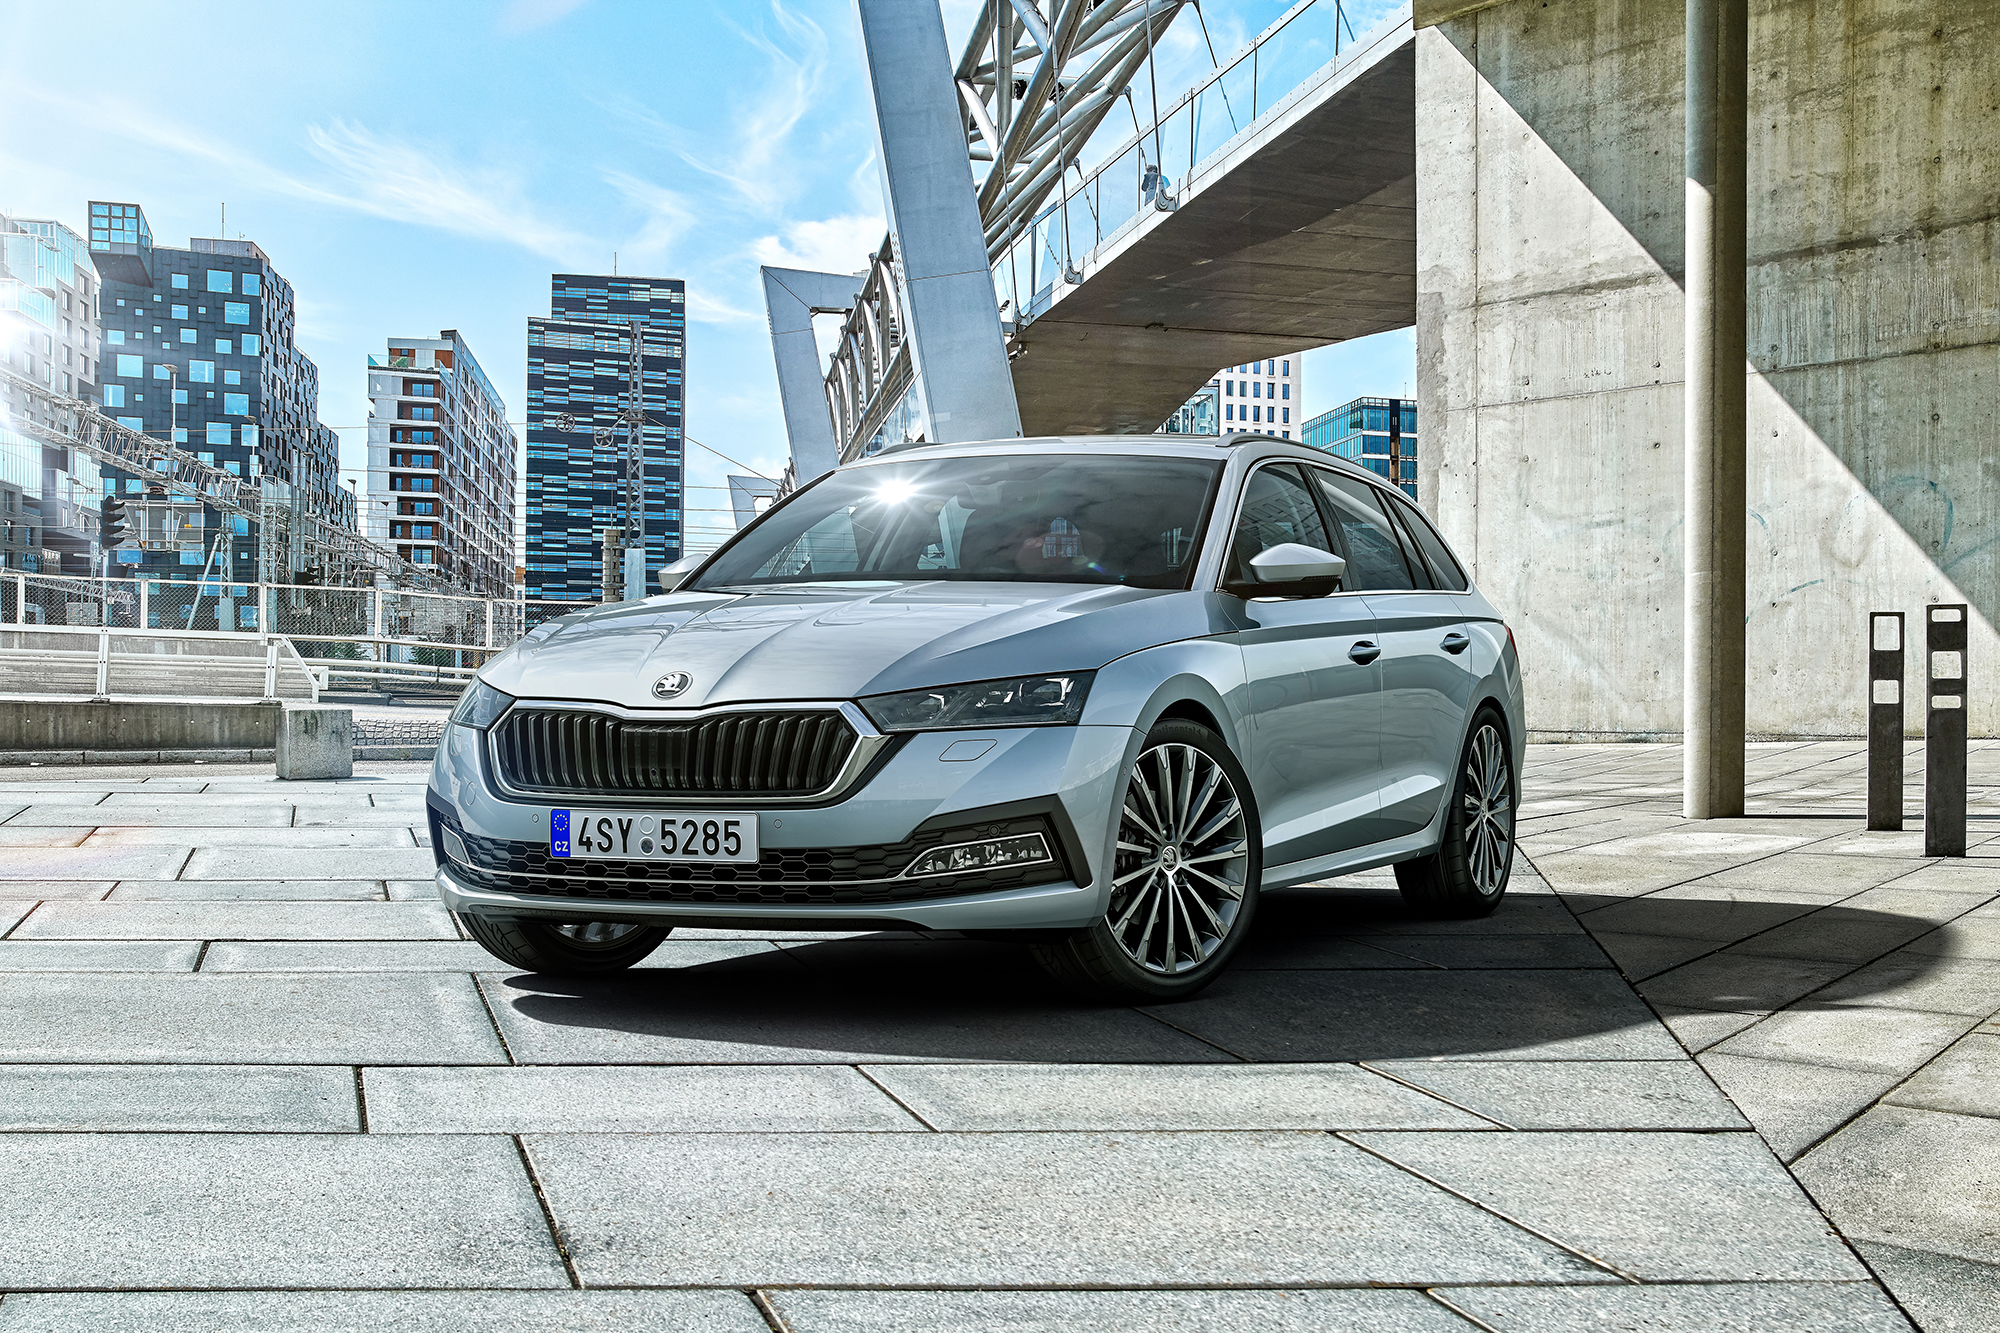 SKODA AUTO delivers over one million vehicles worldwide in 2020 despite COVID-19 pandemic - Image 2